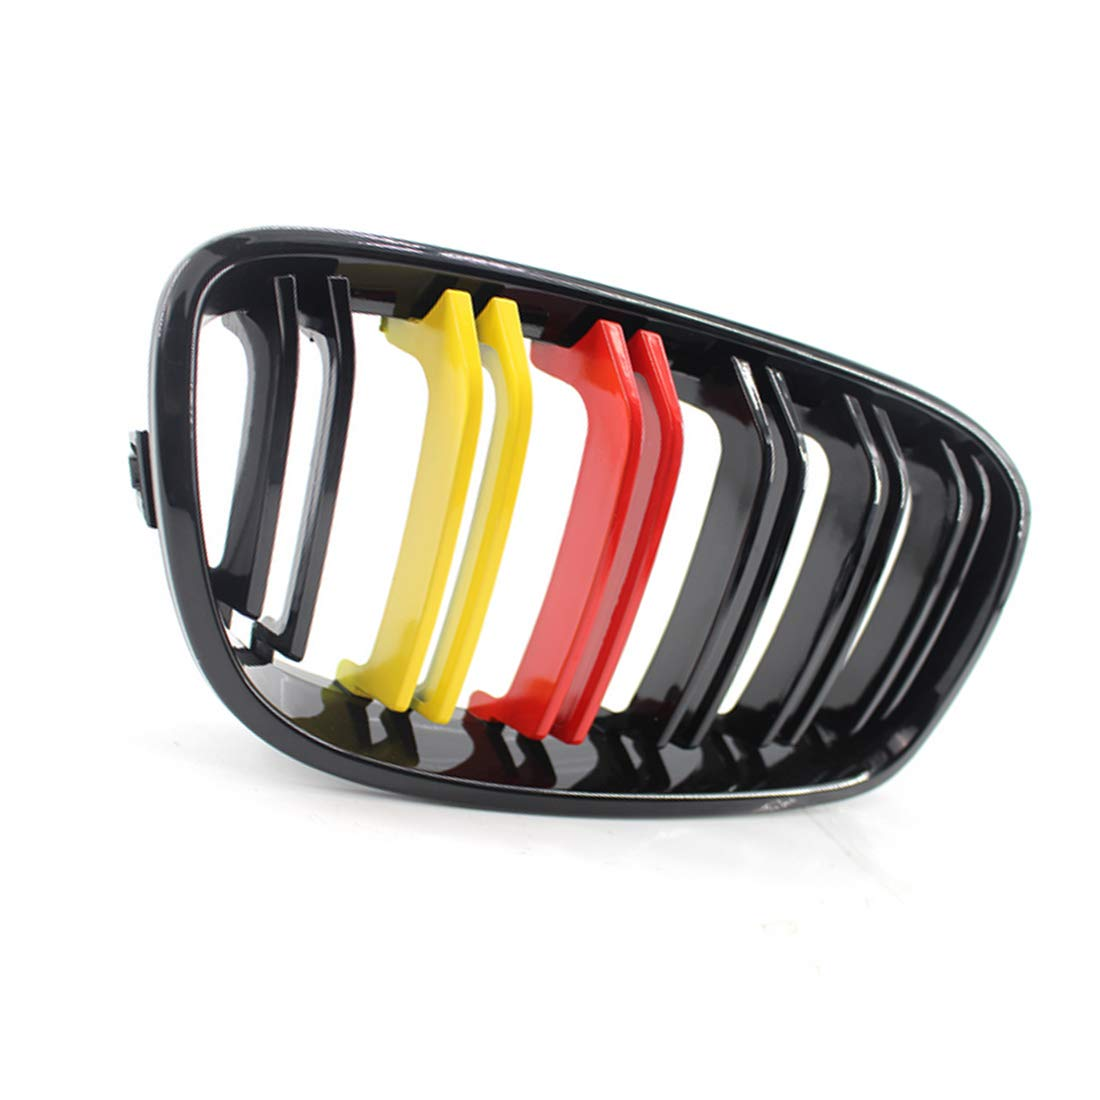 Grille Kidney Grille Front Grille Decoration Grilles Grills For 1 Series F20 11-14 M version double line red and yellow